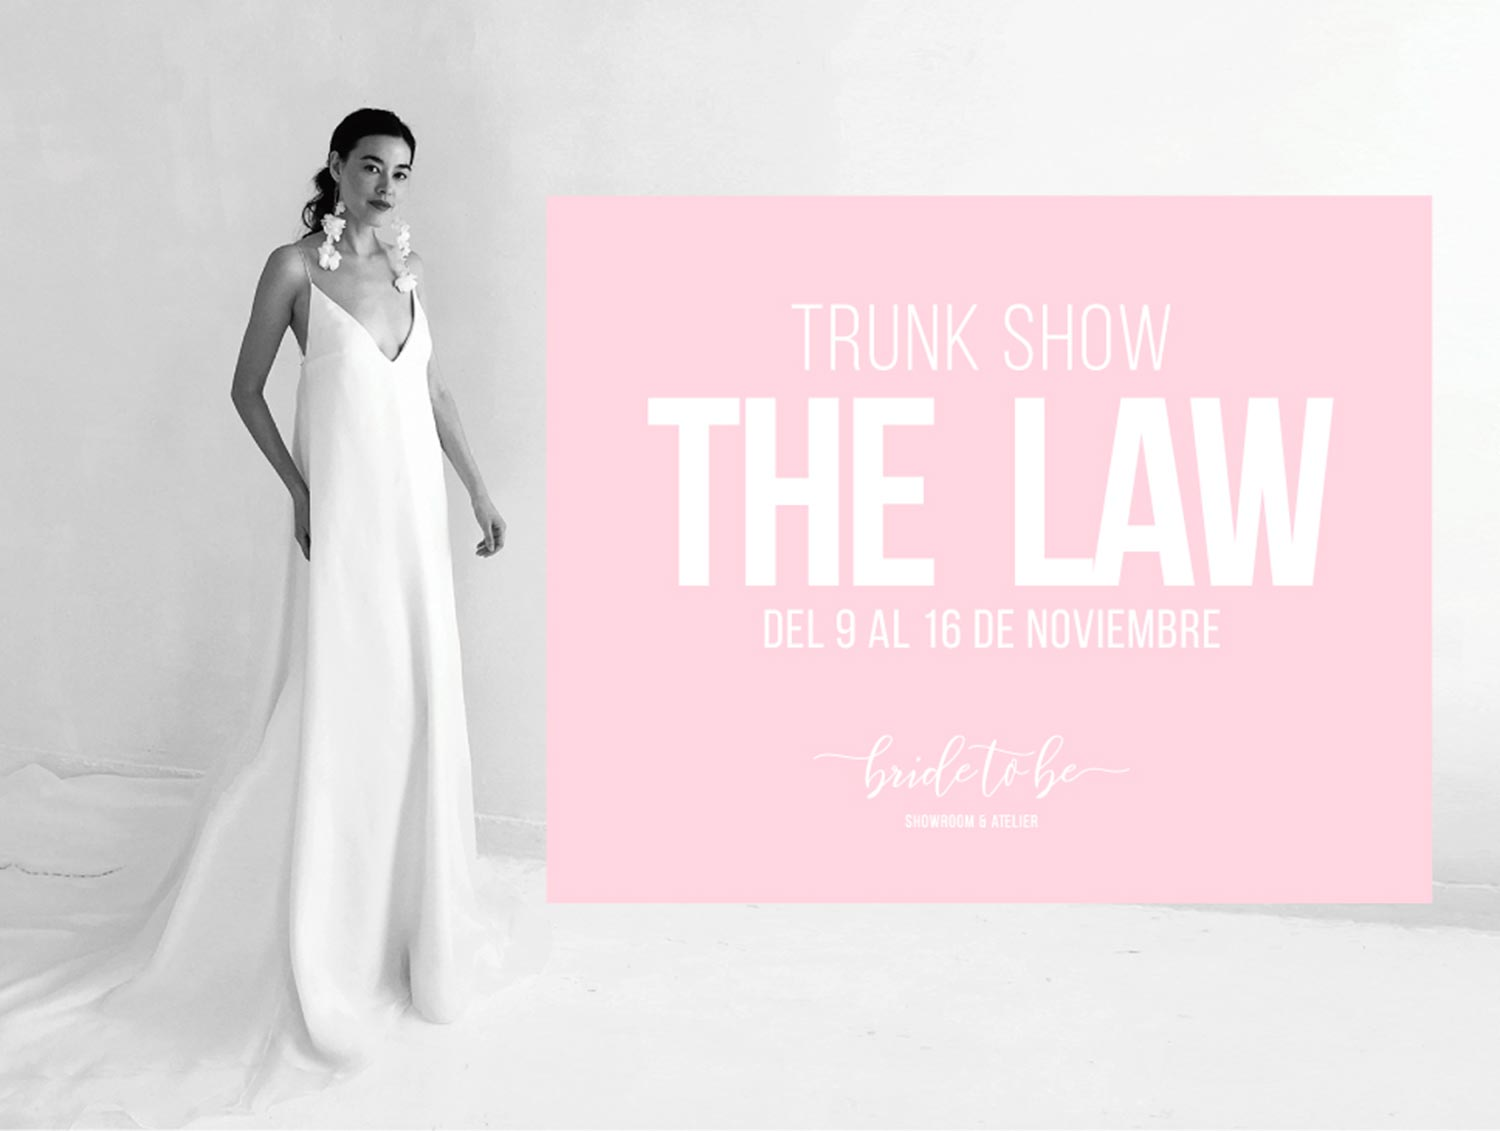 Moda – Bride to be – Showroom & Atelier de novia en Vigo